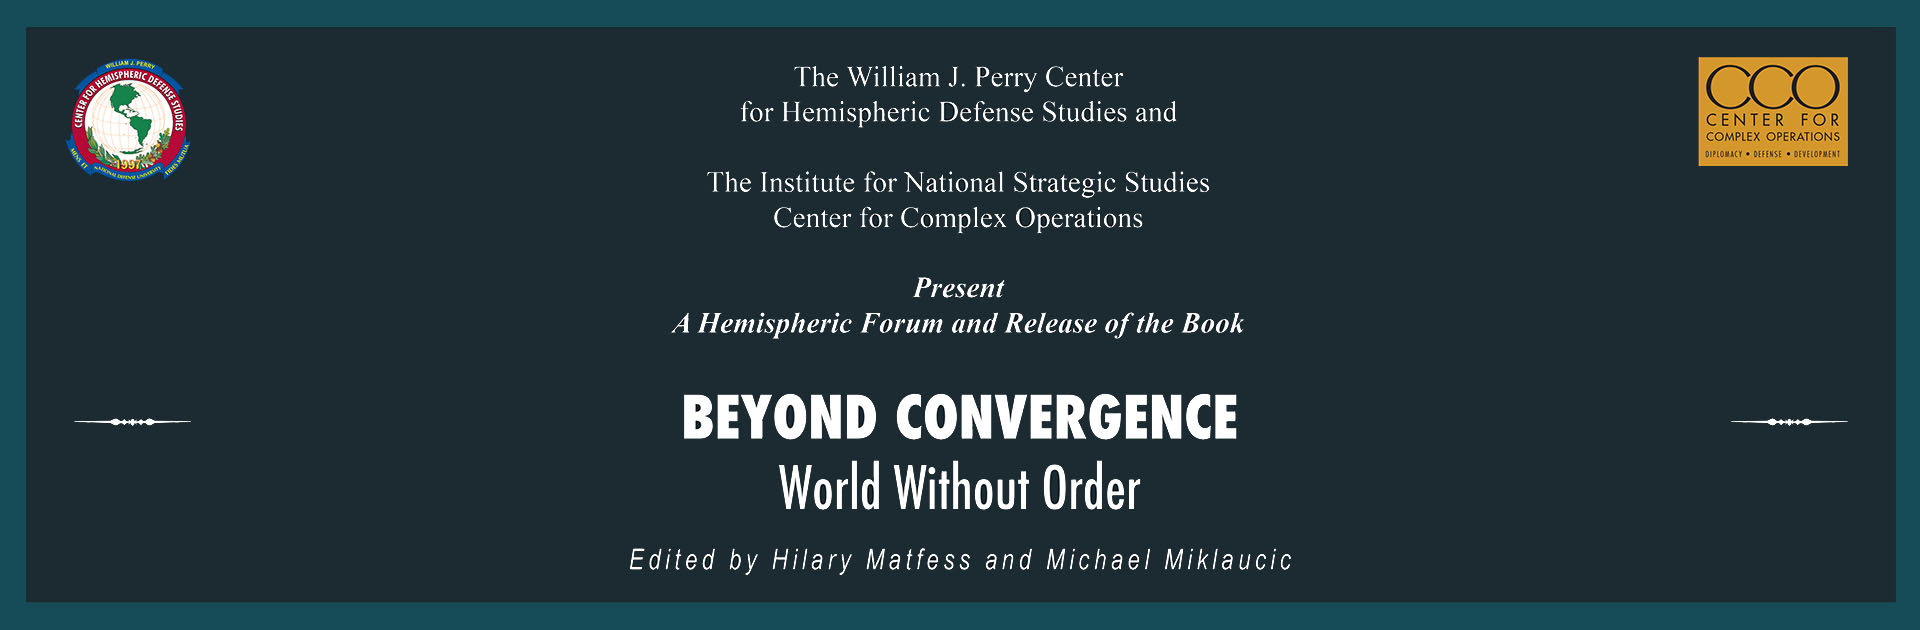 Beyond Convergence: World Without Order